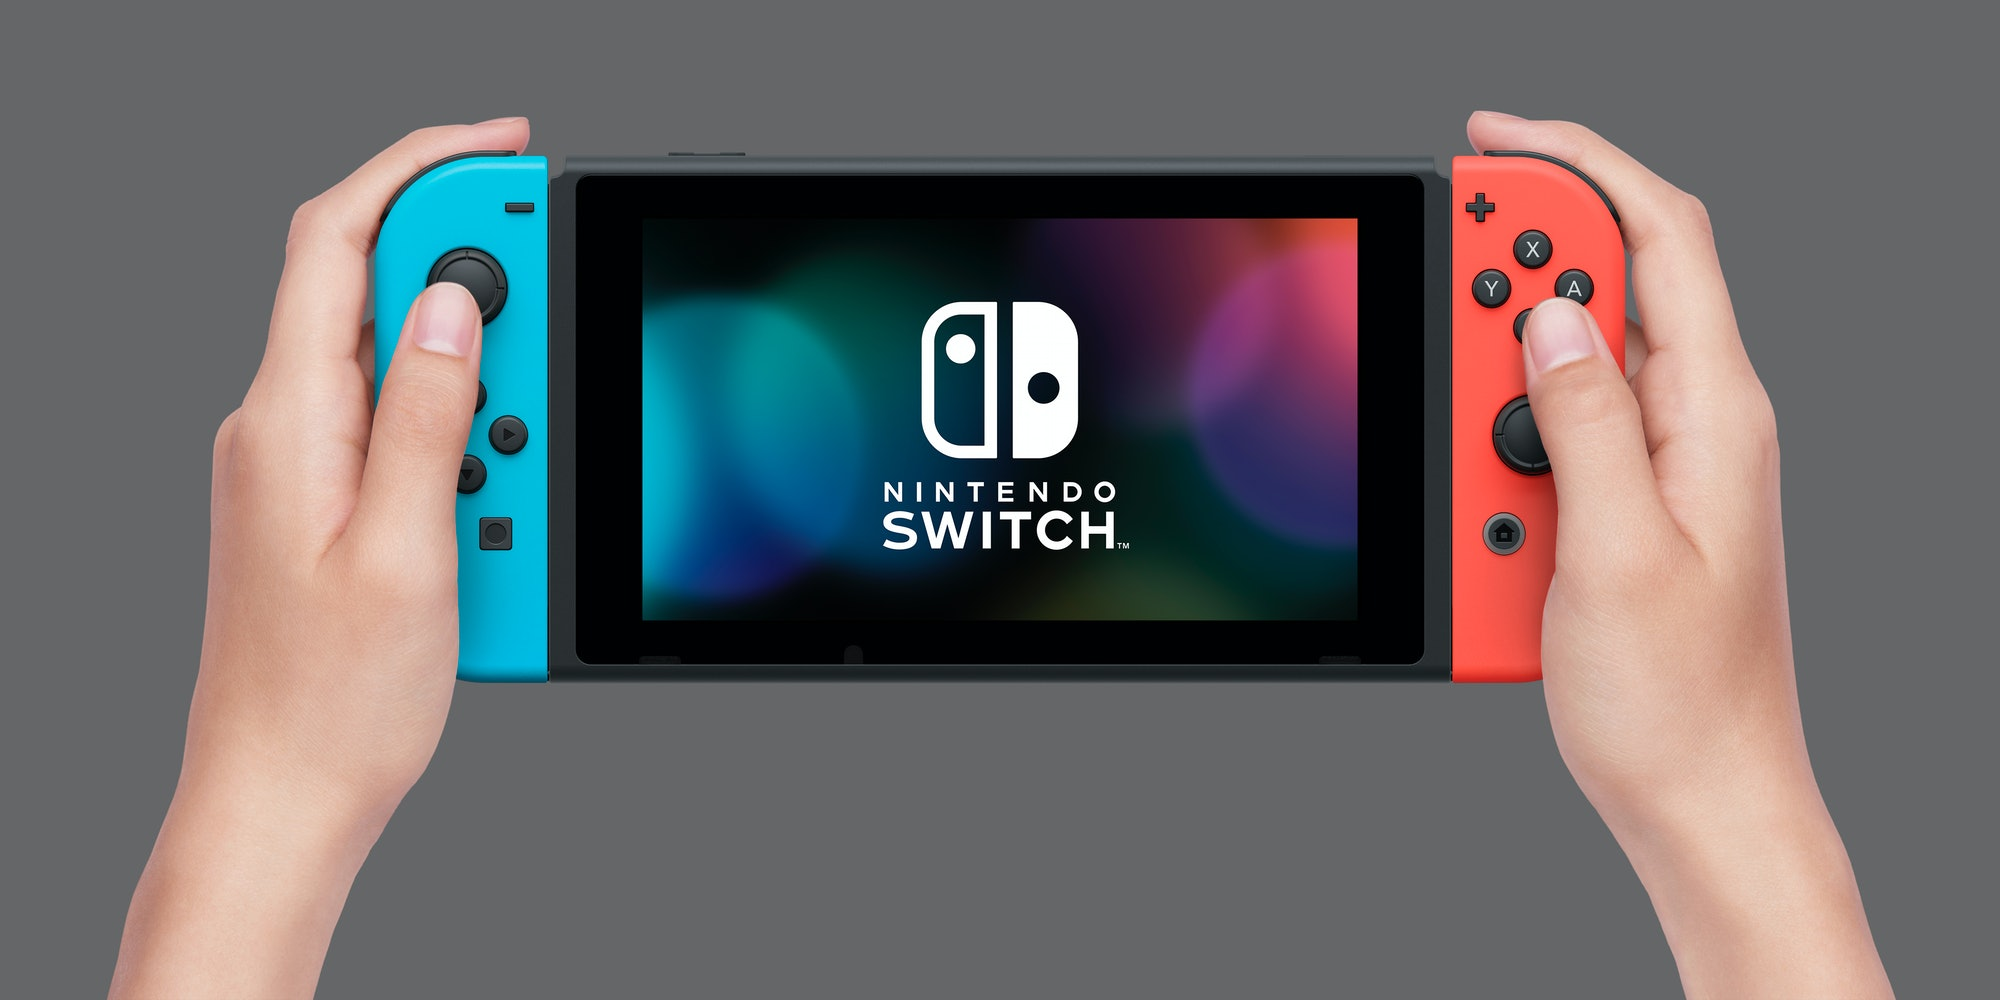 Nintendo Switch with Joy-Con controllers